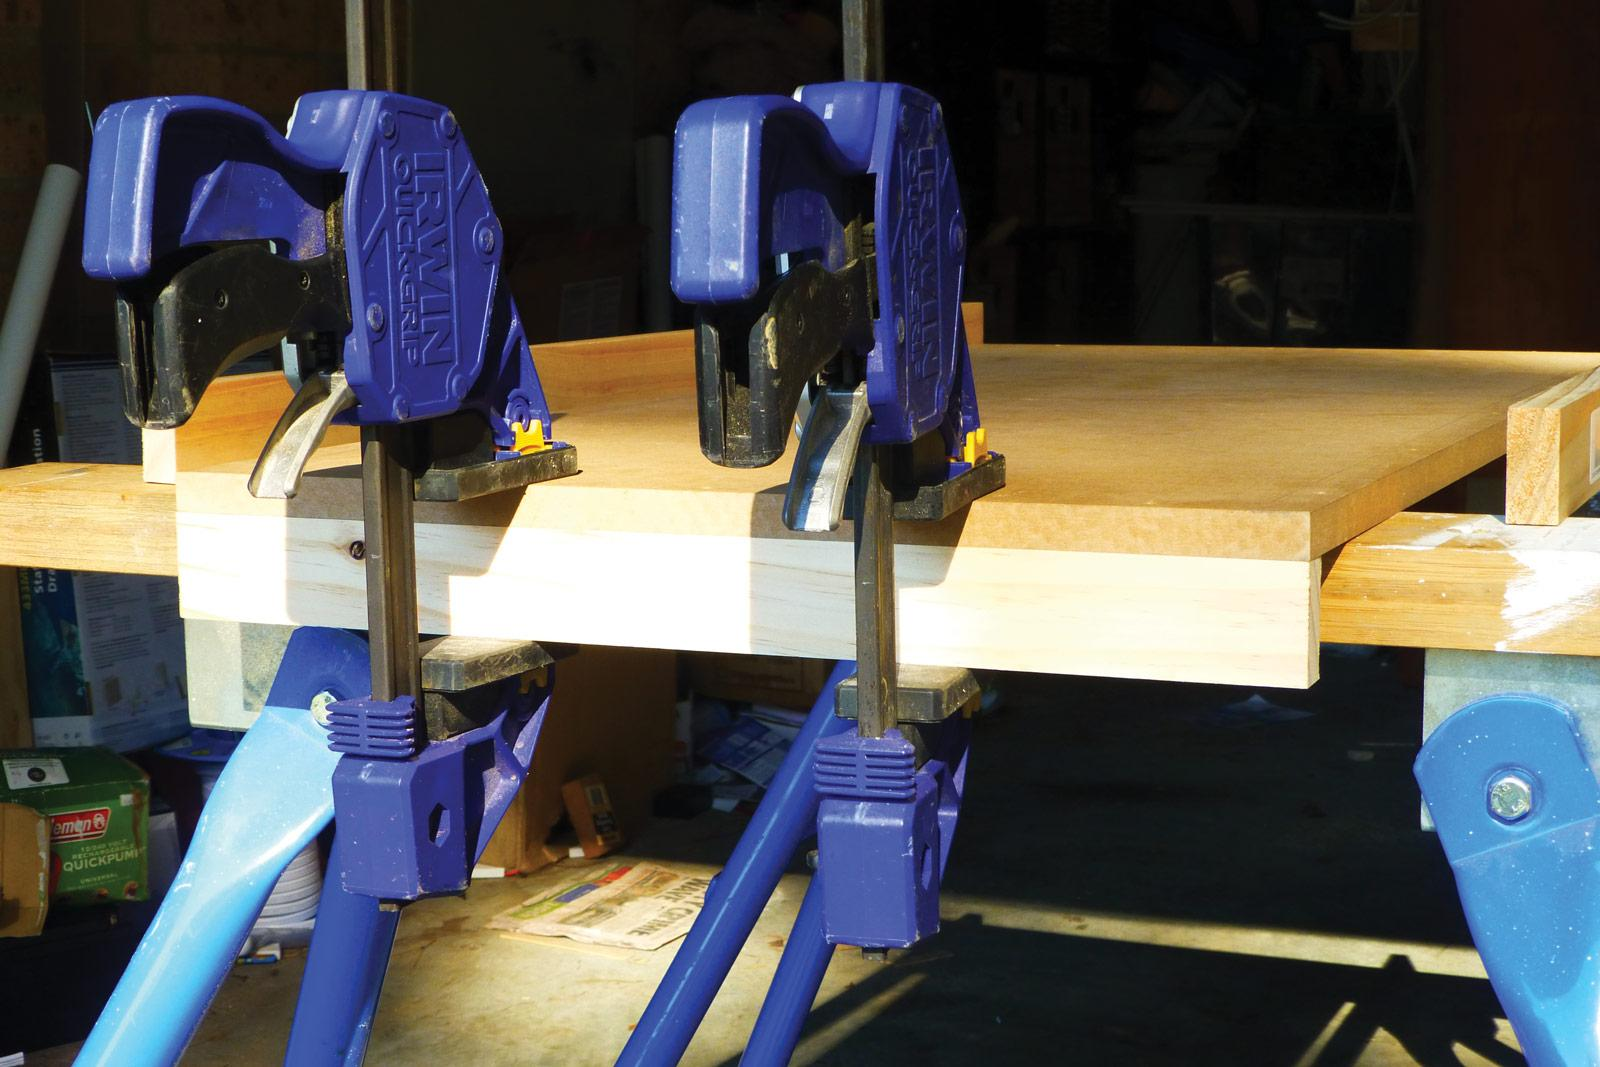 Clamping side supports